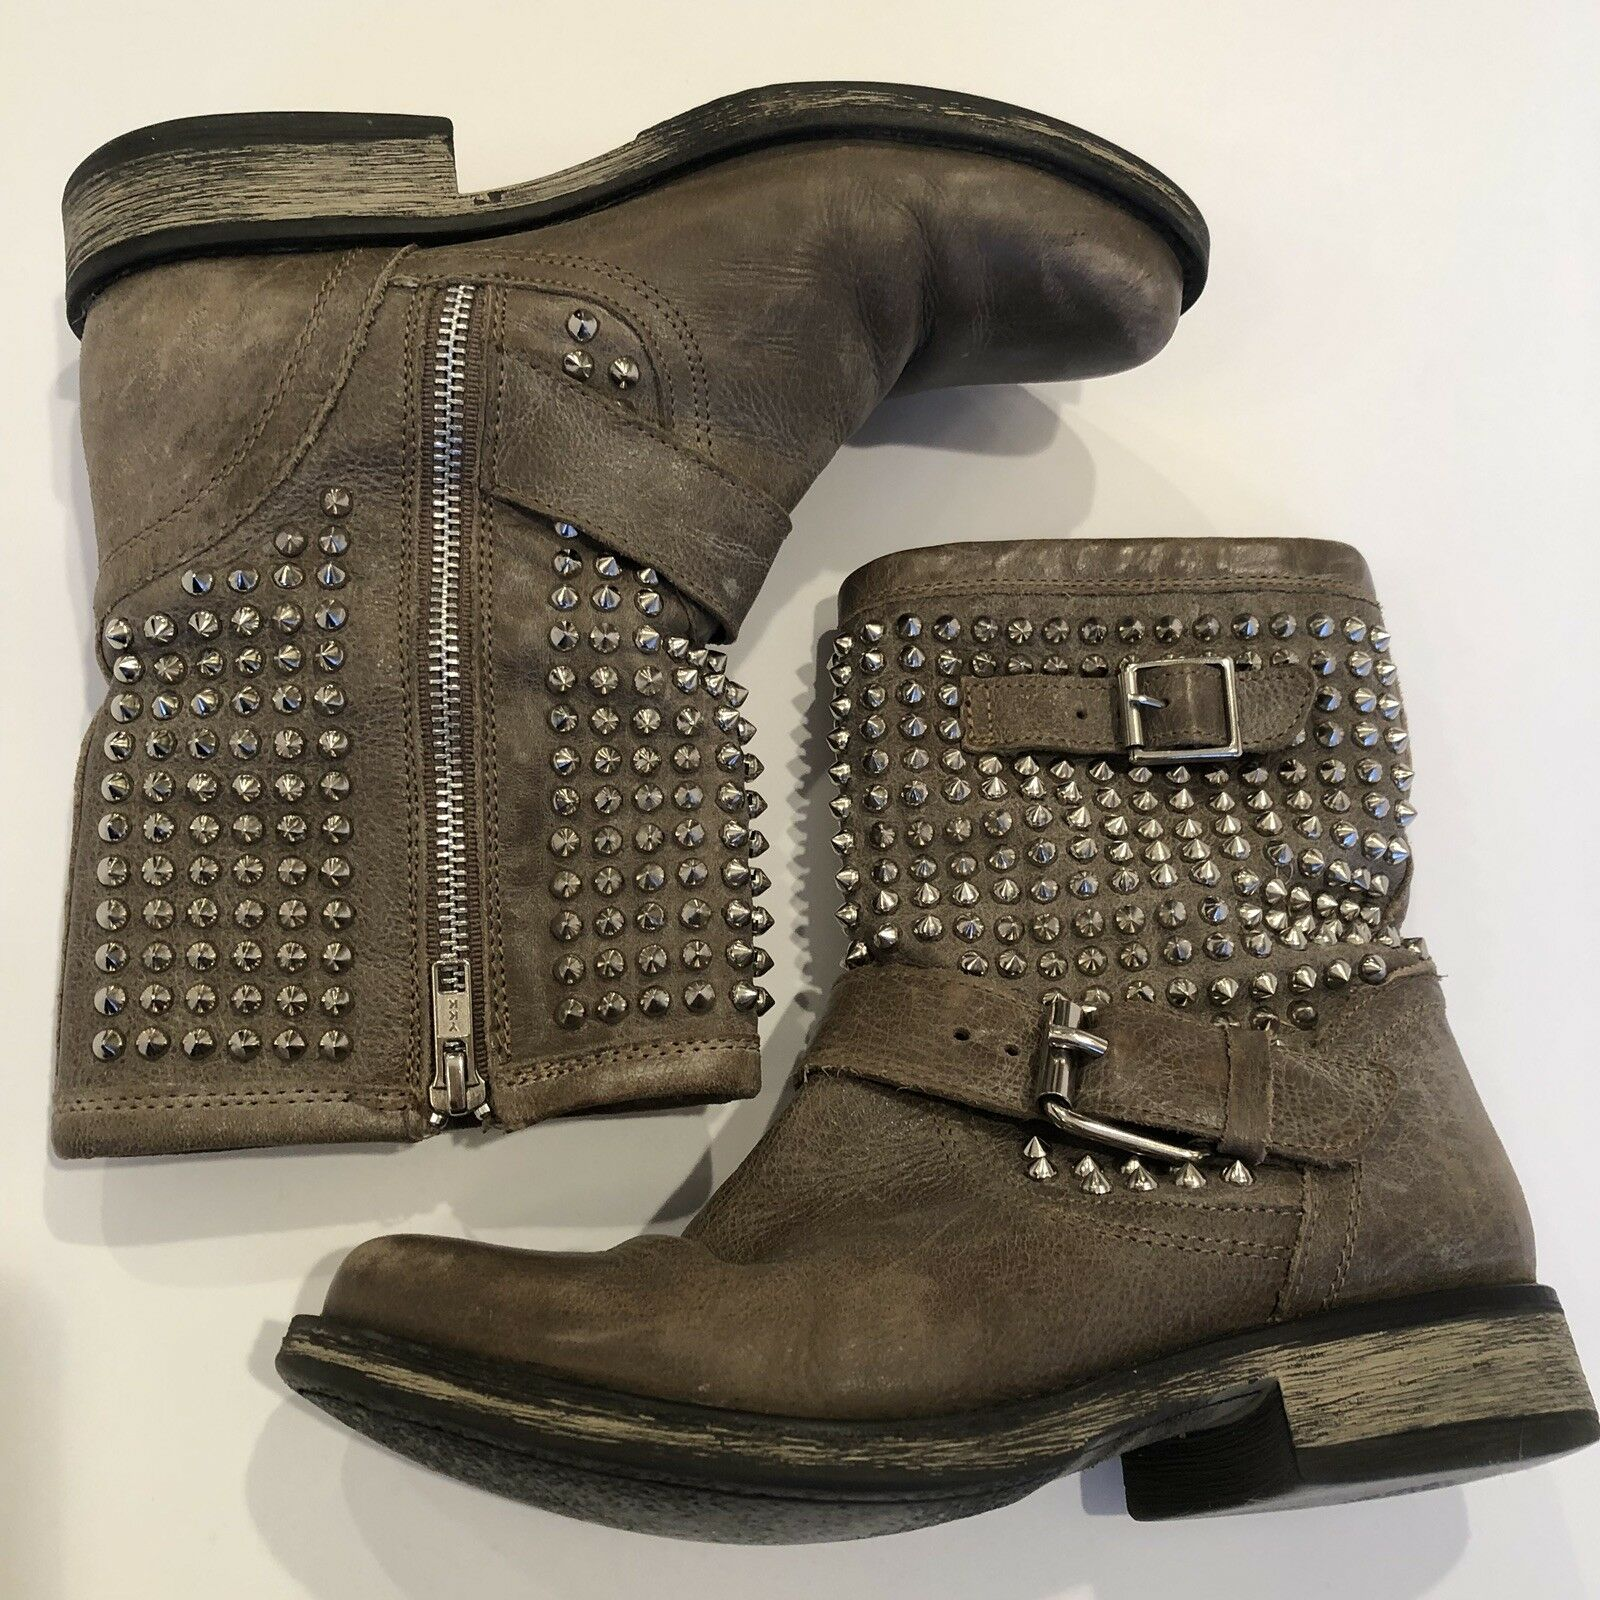 Steve Madden Stiefel Monicaa Leather Leather Leather Studded Mid Calf biker 7.5M 4bcb2f